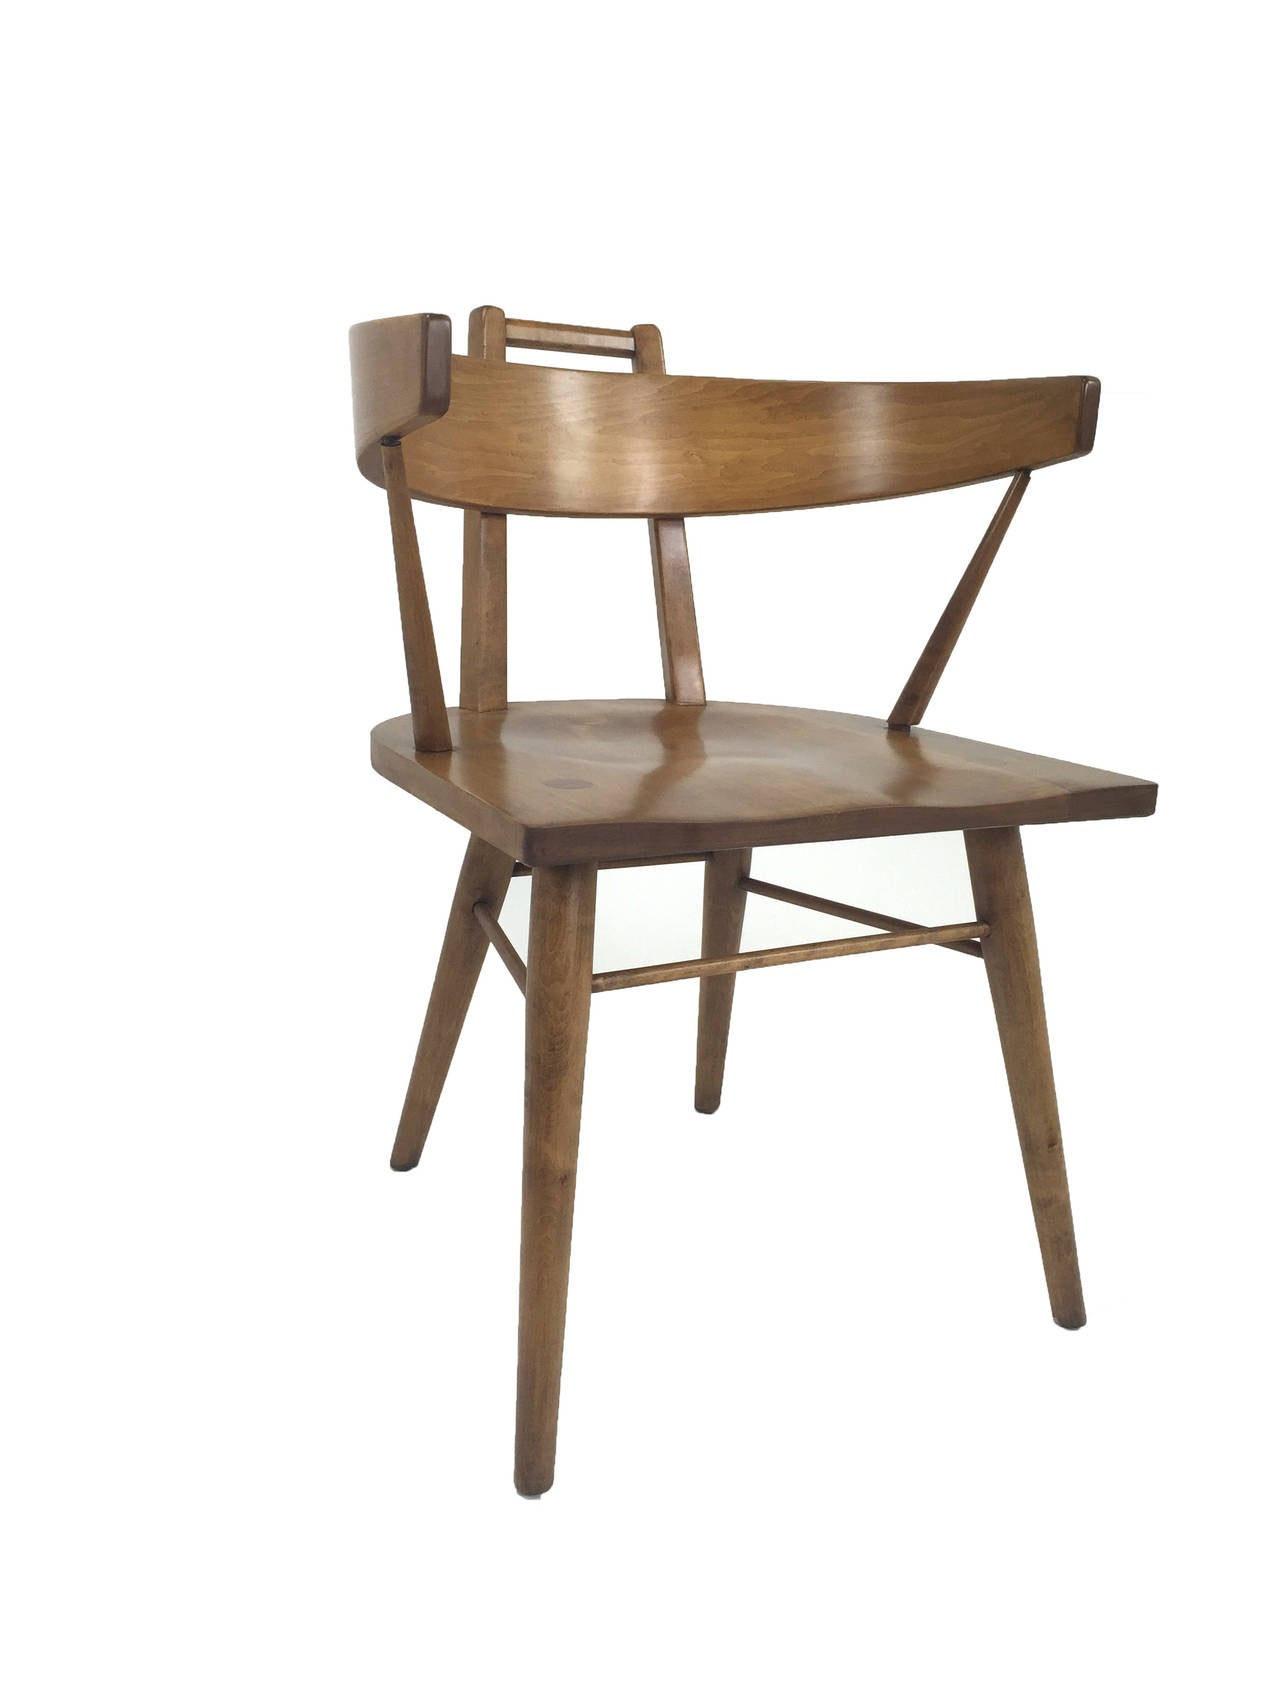 unusual dining chair la z boy executive wing chairs by the northwest co at 1stdibs